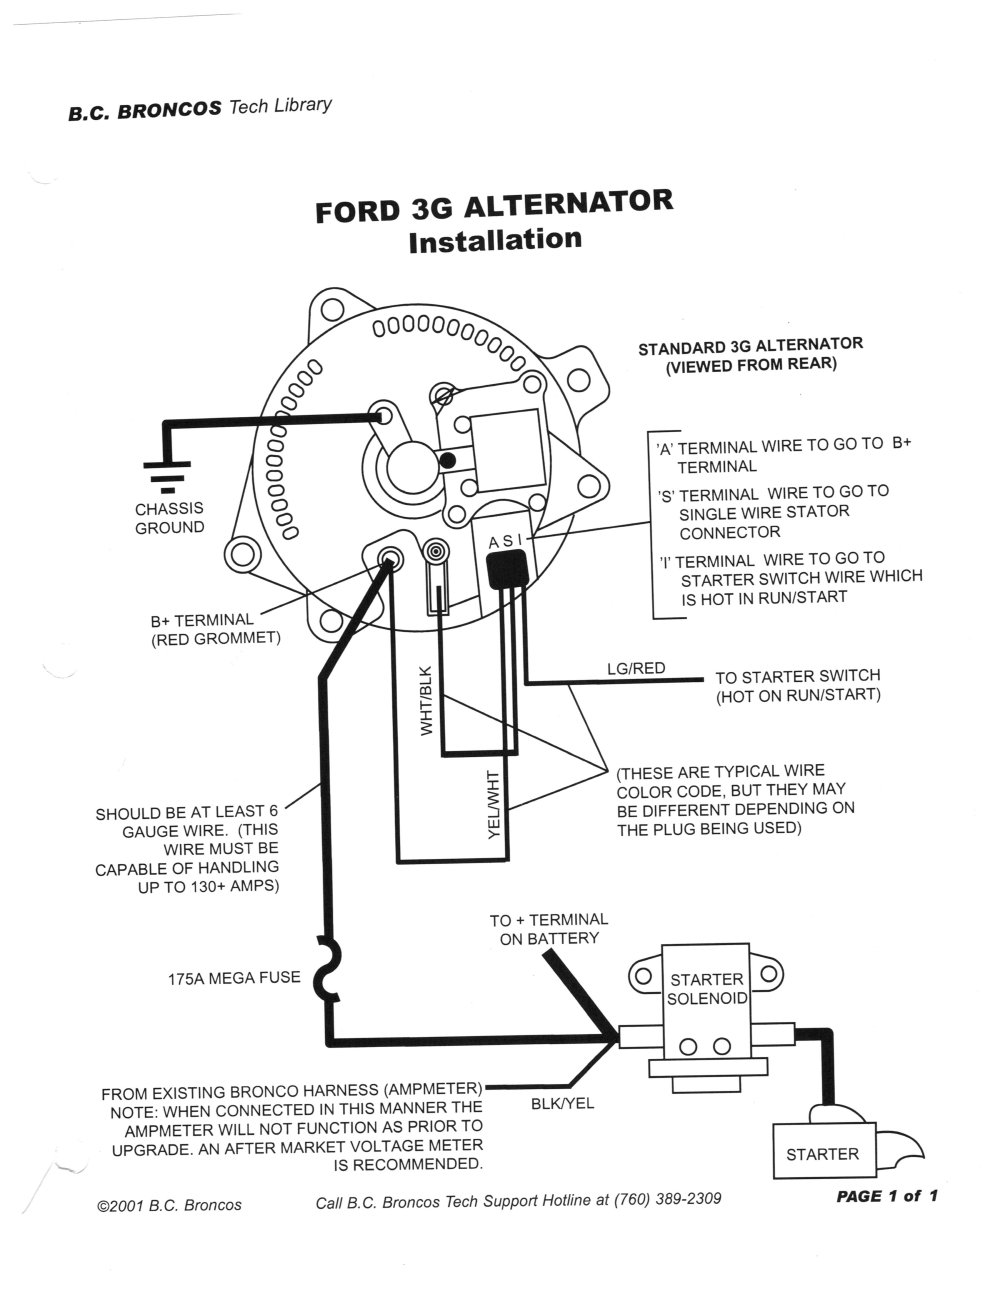 medium resolution of 1970 ford truck f600 alternator wiring diagram wiring diagram 1970 ford f100 alternator wiring diagram wiring